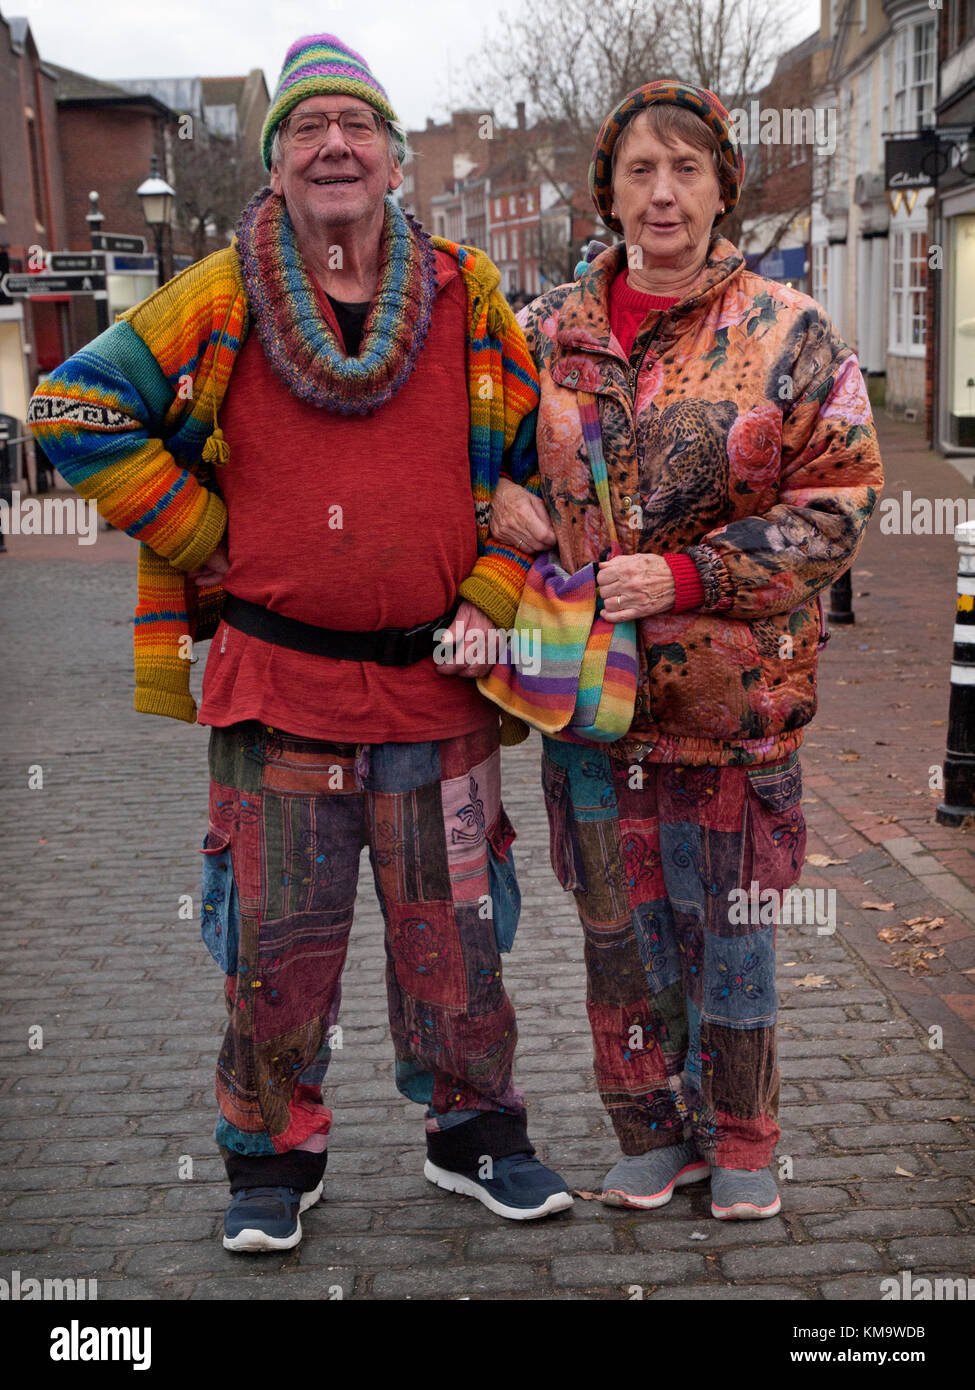 An elderly counterculture couple in Lewes, East Sussex - Stock Image